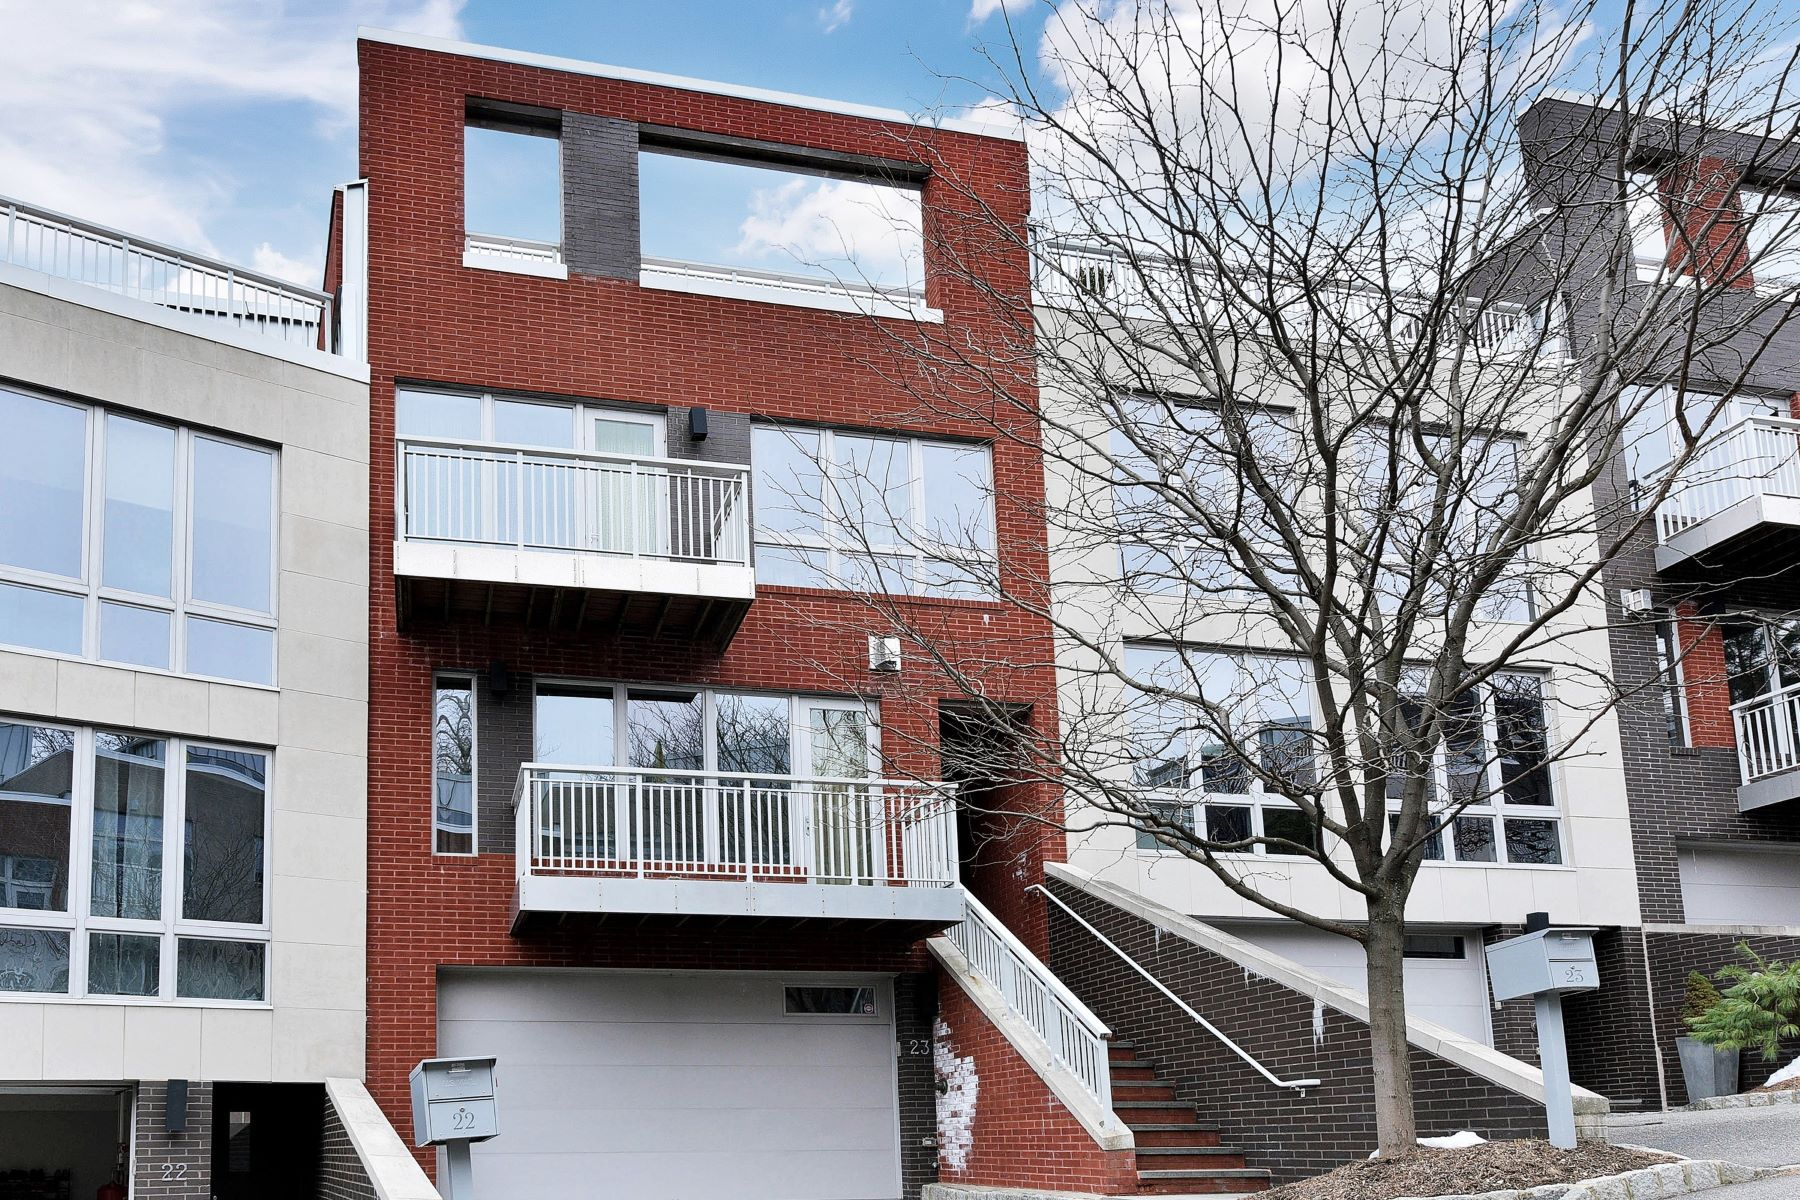 Townhouse for Sale at Luxury Townhouse 23 Vela Way Edgewater, New Jersey 07620 United States